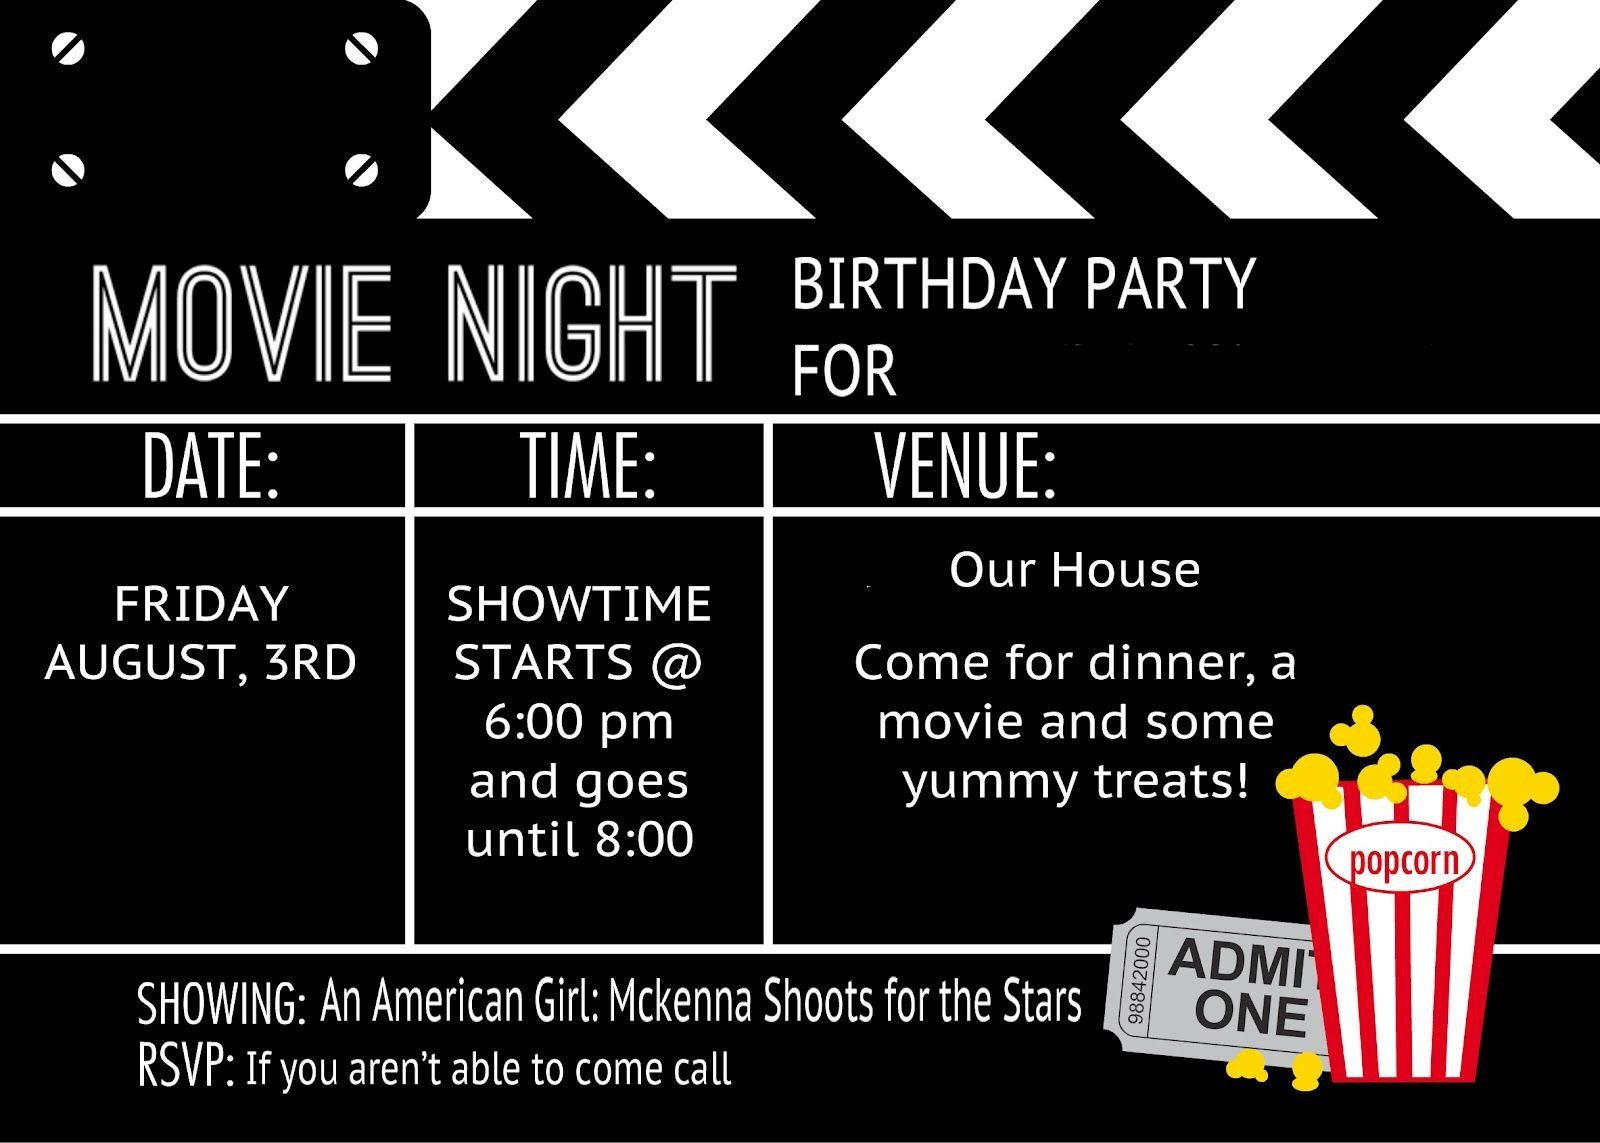 Movie Ticket Invitation Template Cool Black and White Movie themed Birthday Party